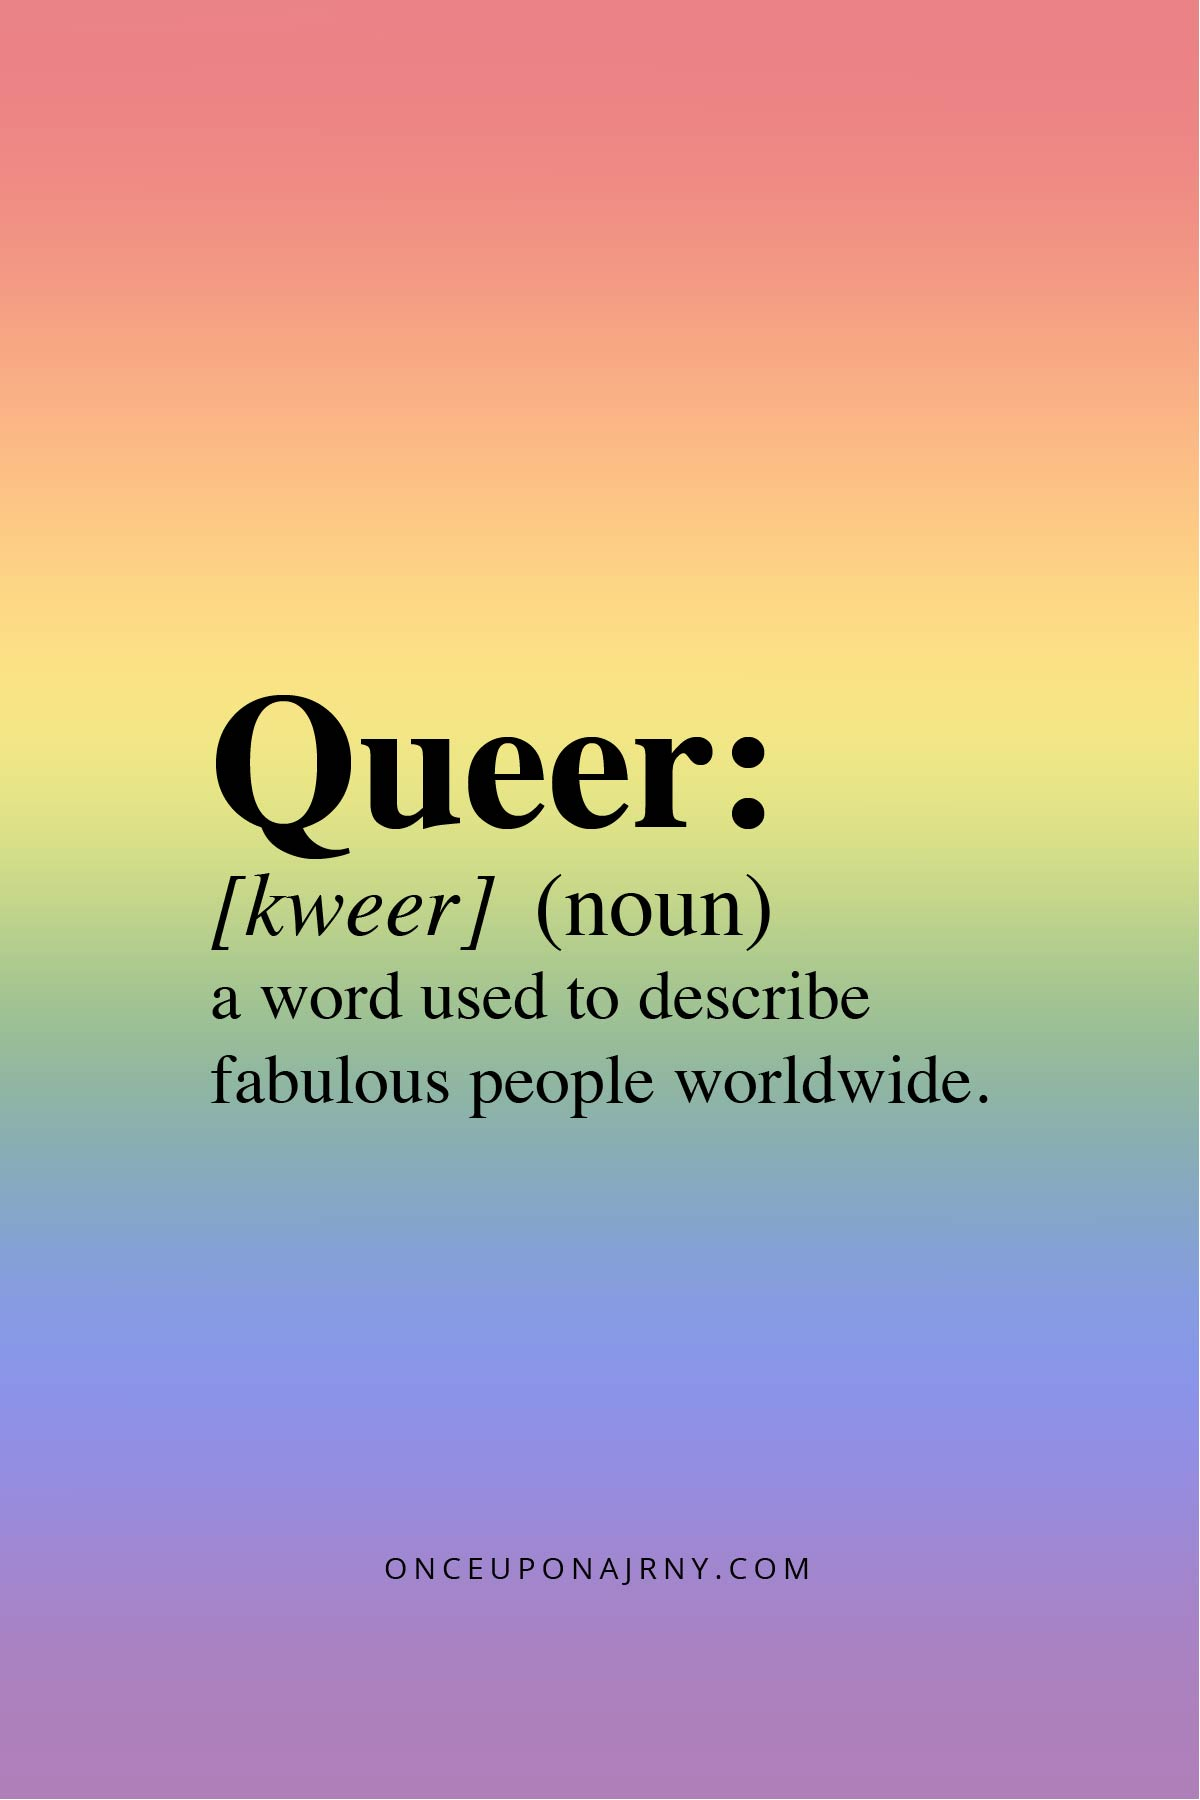 Queer (noun) a word used to describe fabulous people worldwide queer quotes dictionary